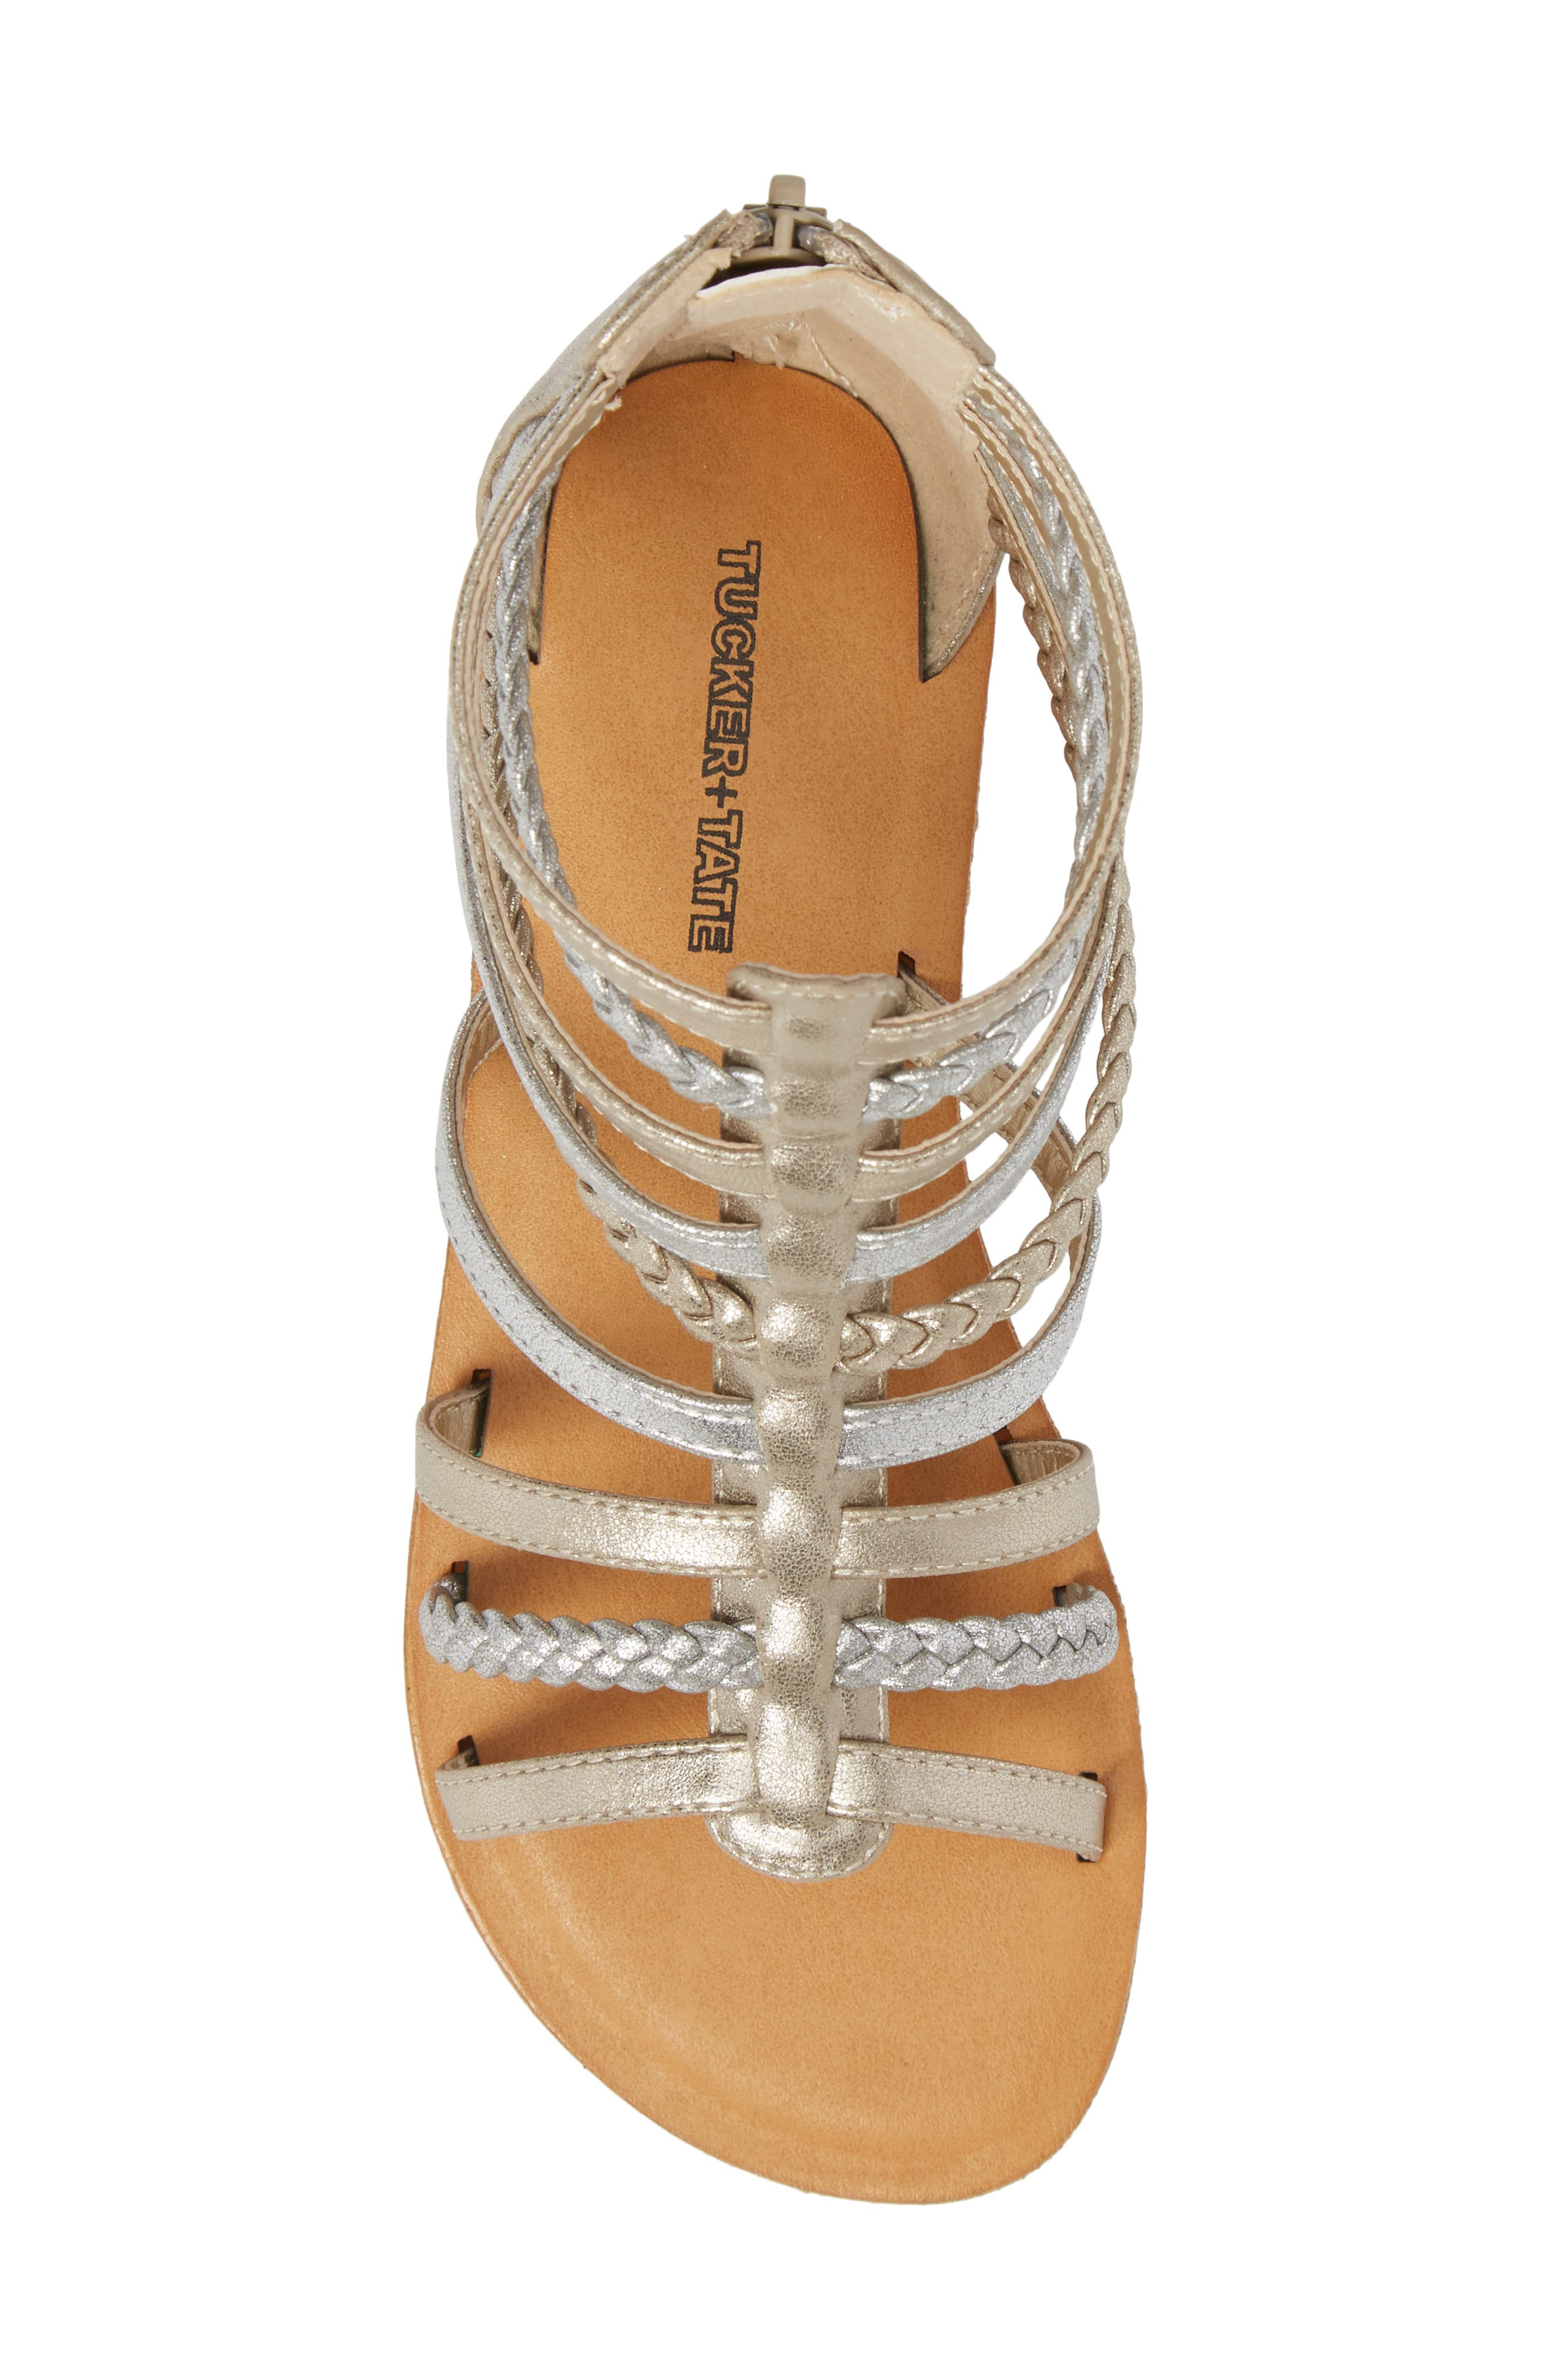 Sonja Braided Gladiator Sandal,                             Alternate thumbnail 5, color,                             Silver/ Gold Faux Leather